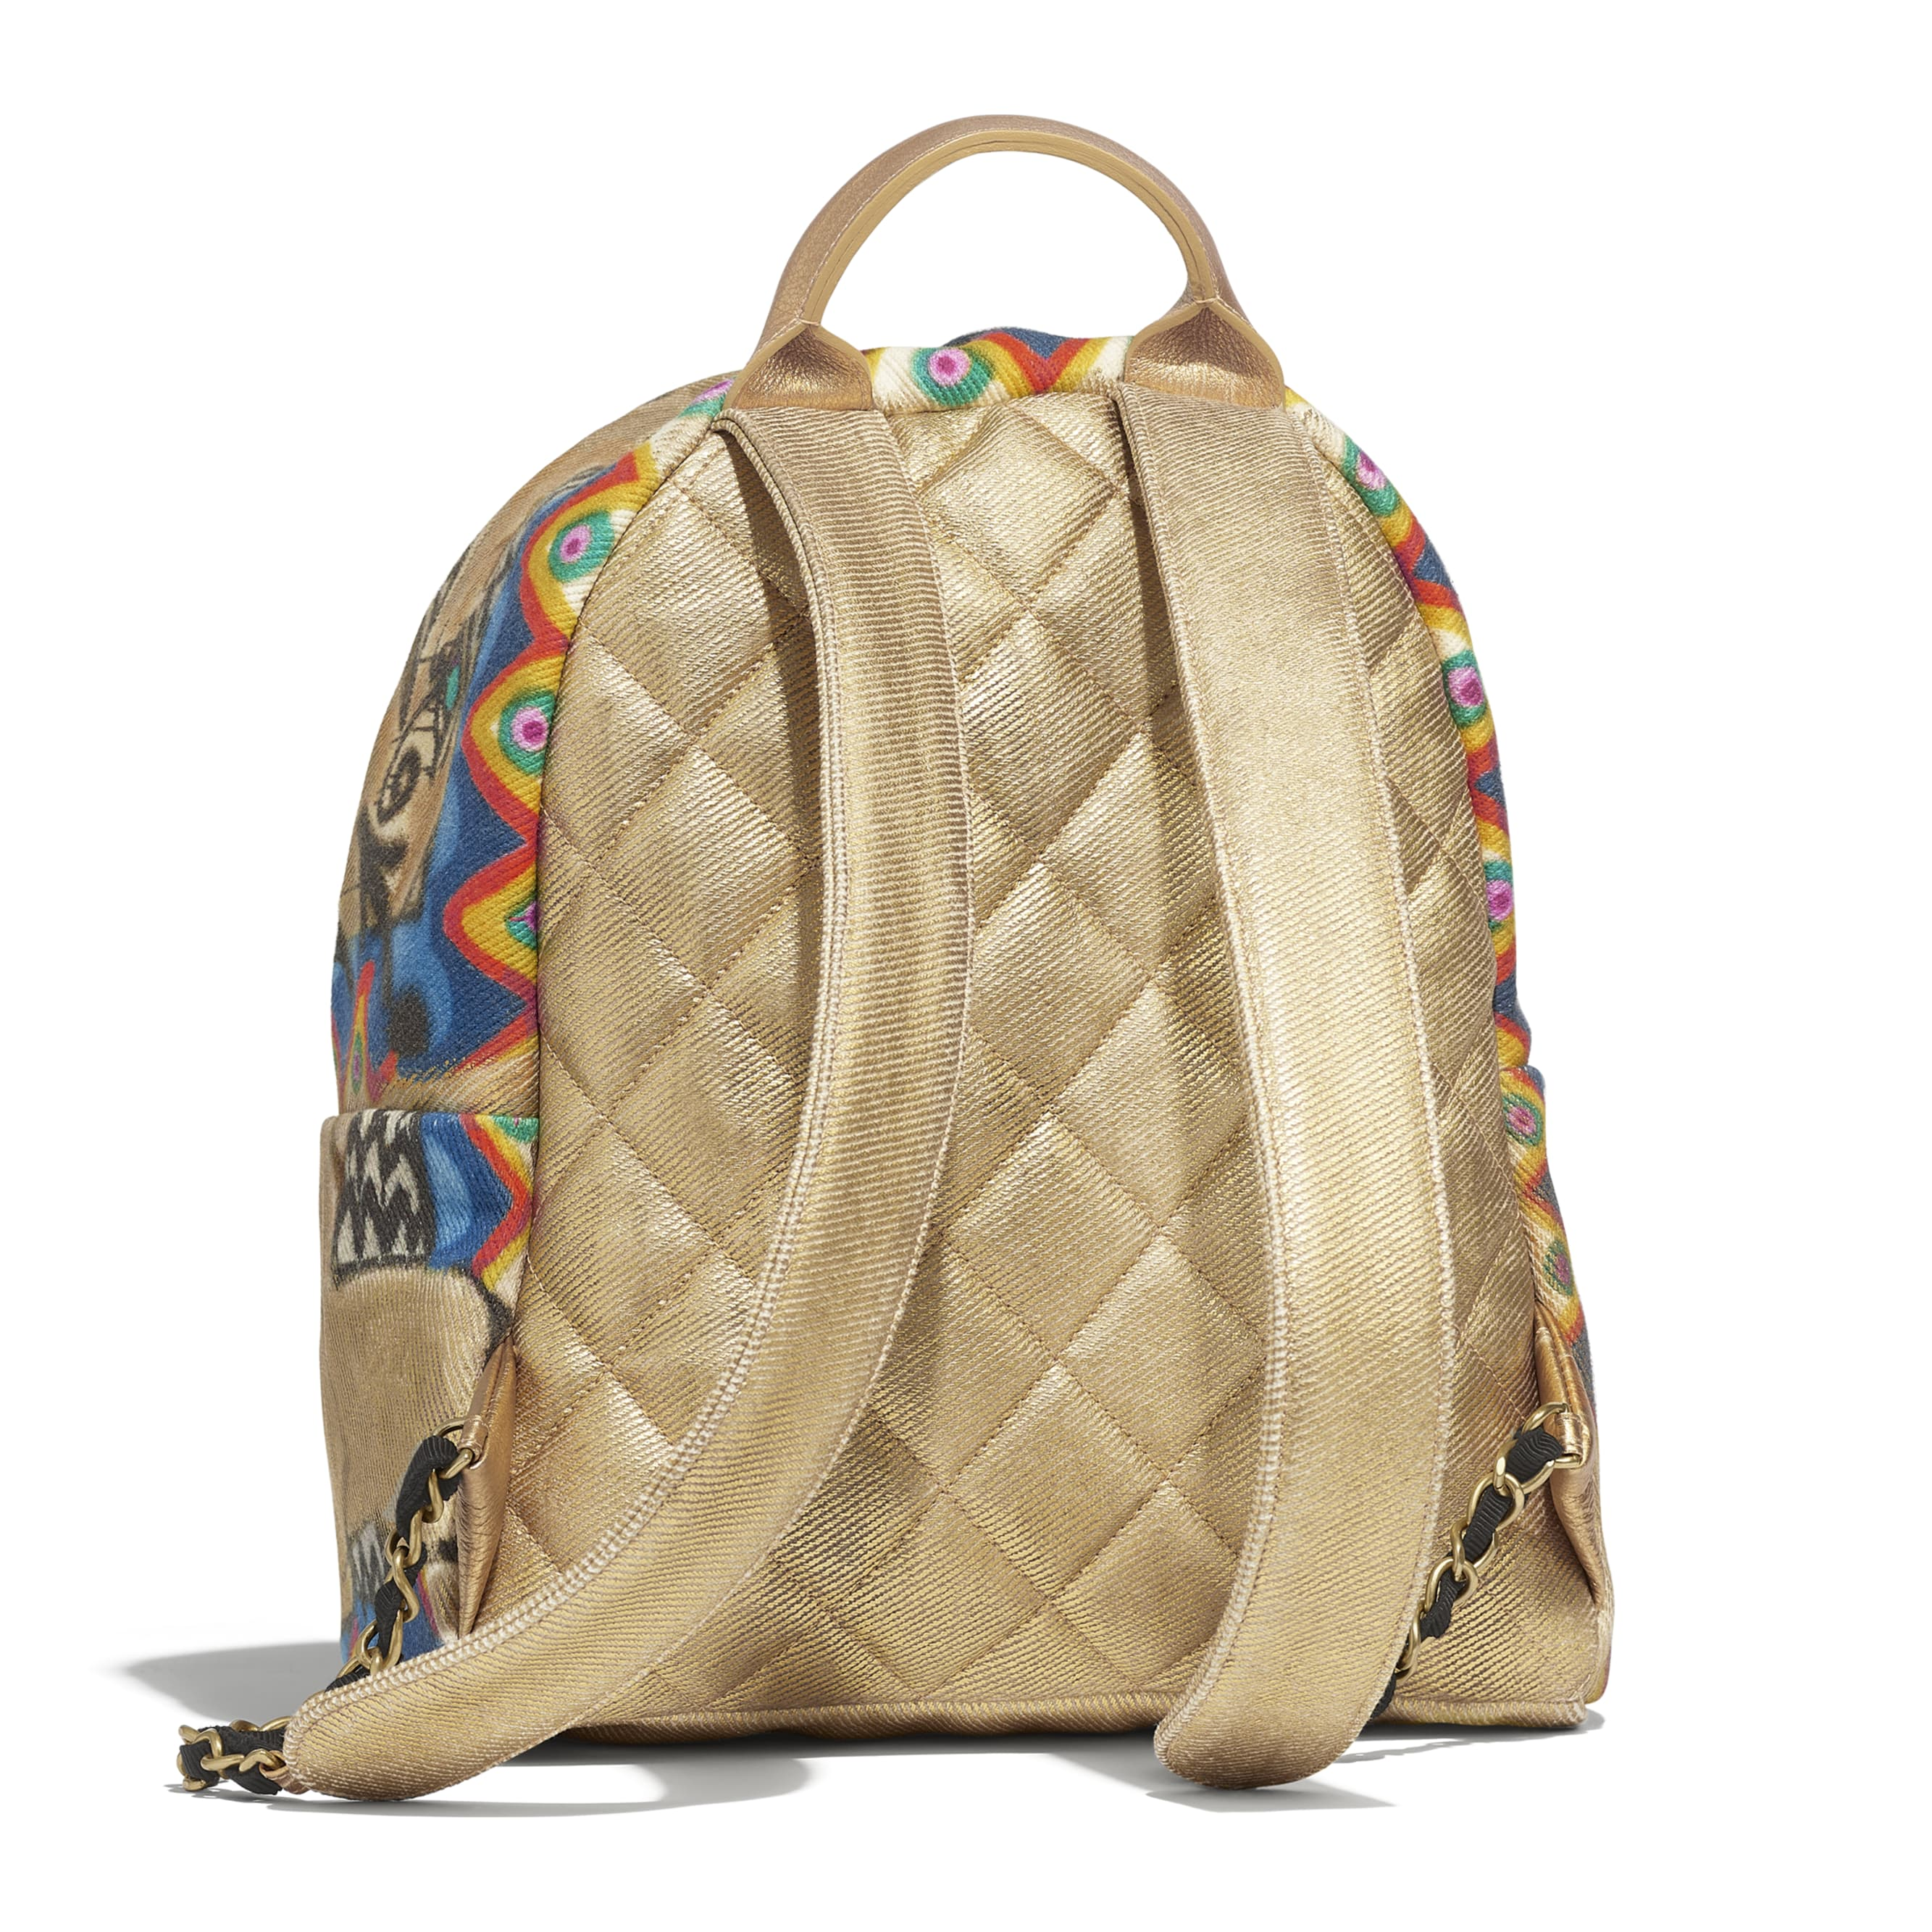 Backpack - Multicolor - Calfskin, Cotton & Gold-Tone Metal - Alternative view - see standard sized version